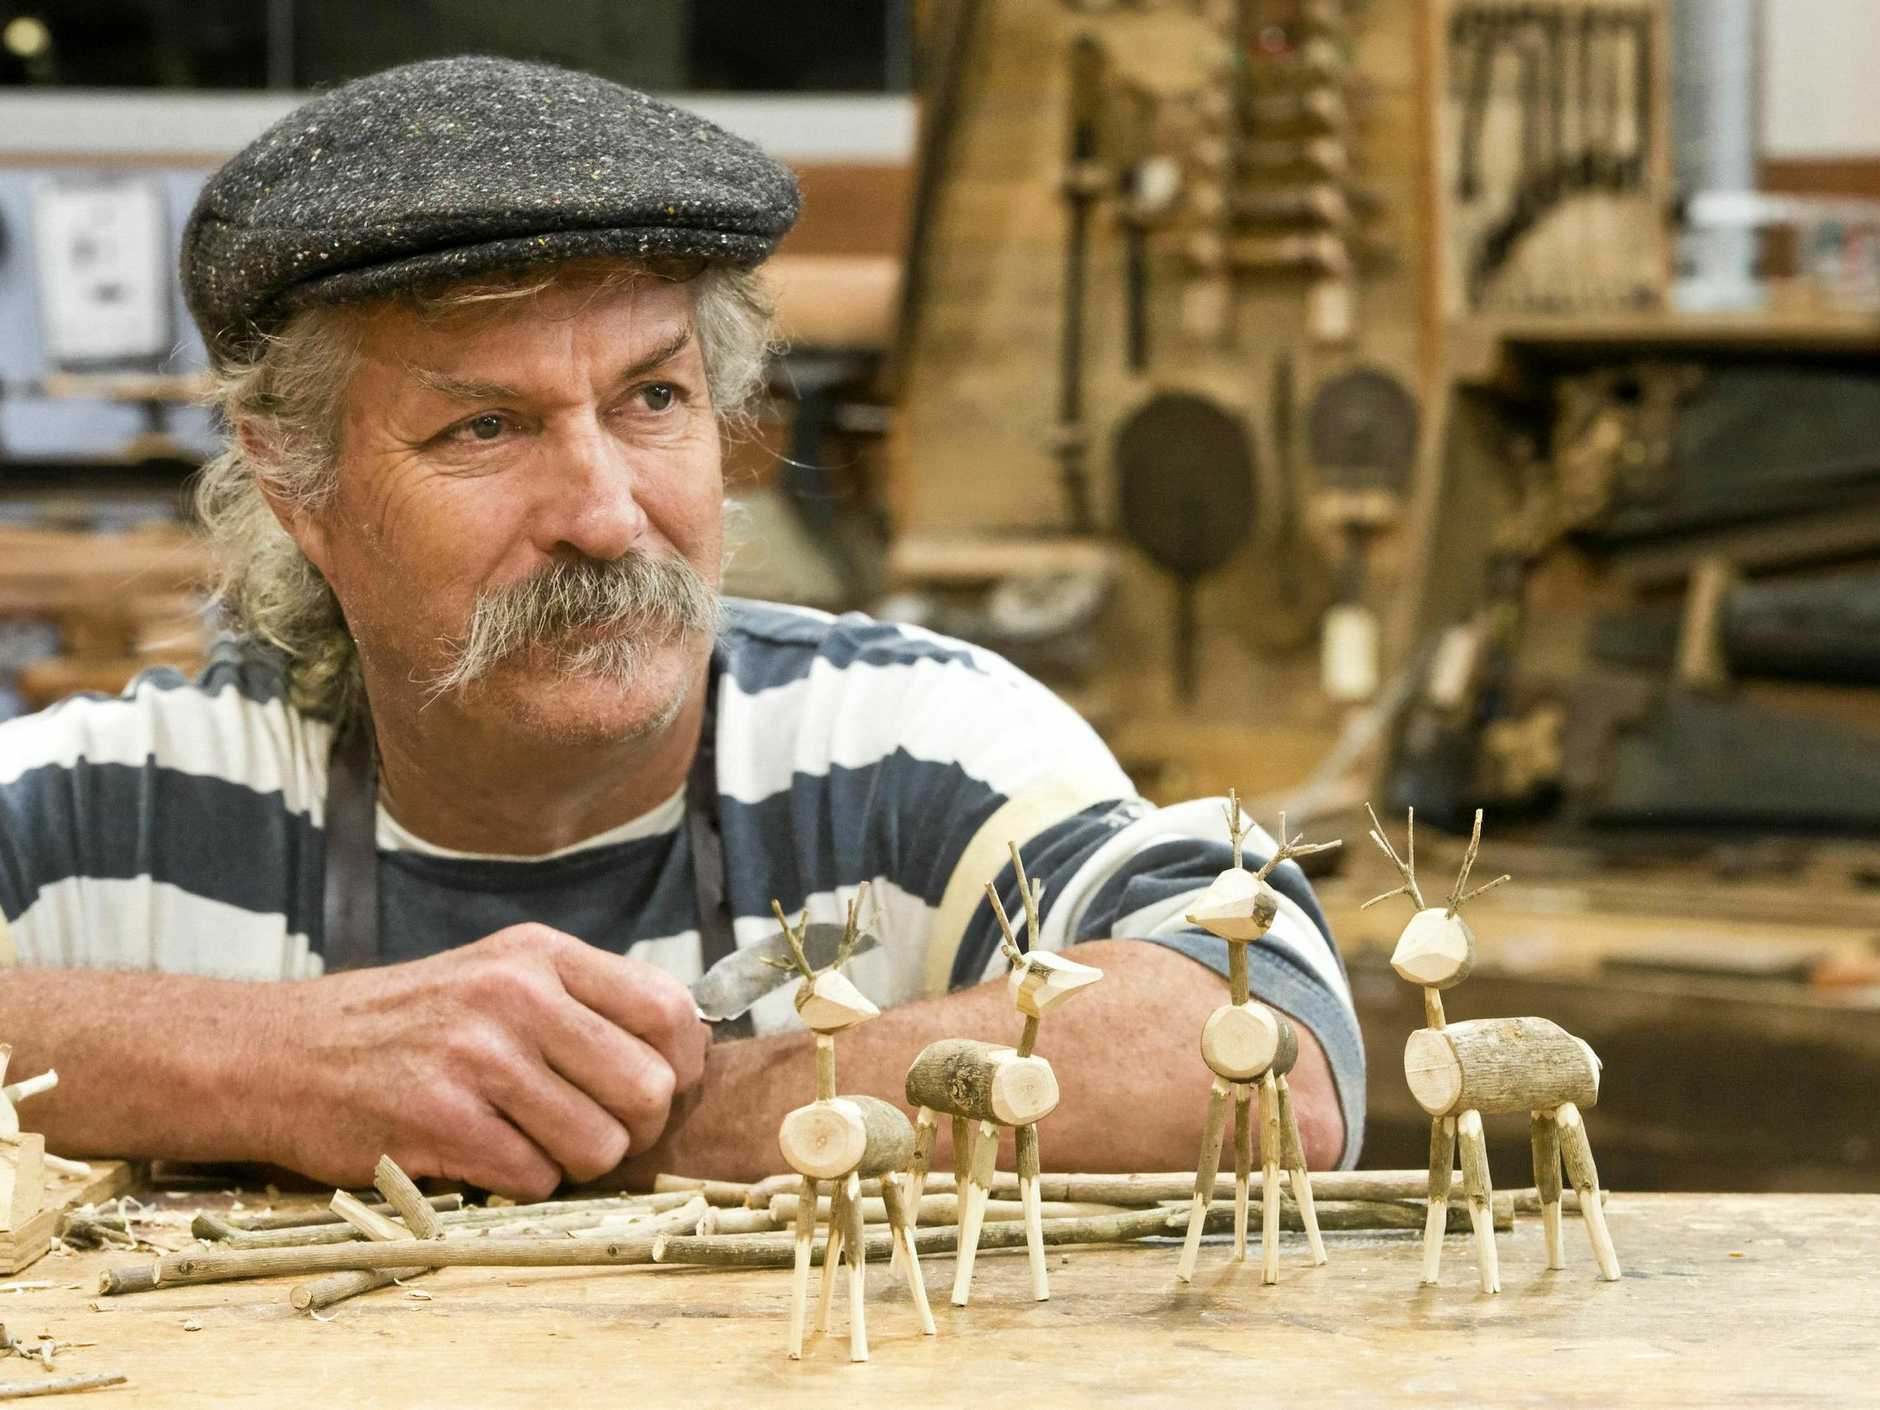 TINY ANTLERS:  Wood and sculpture artisan Andrew MacDonald is making wooden reindeers for the Hand Made Under the Stars twilight artisan market, Cobb and Co Museum. Wednesday, 29th Nov, 2017.